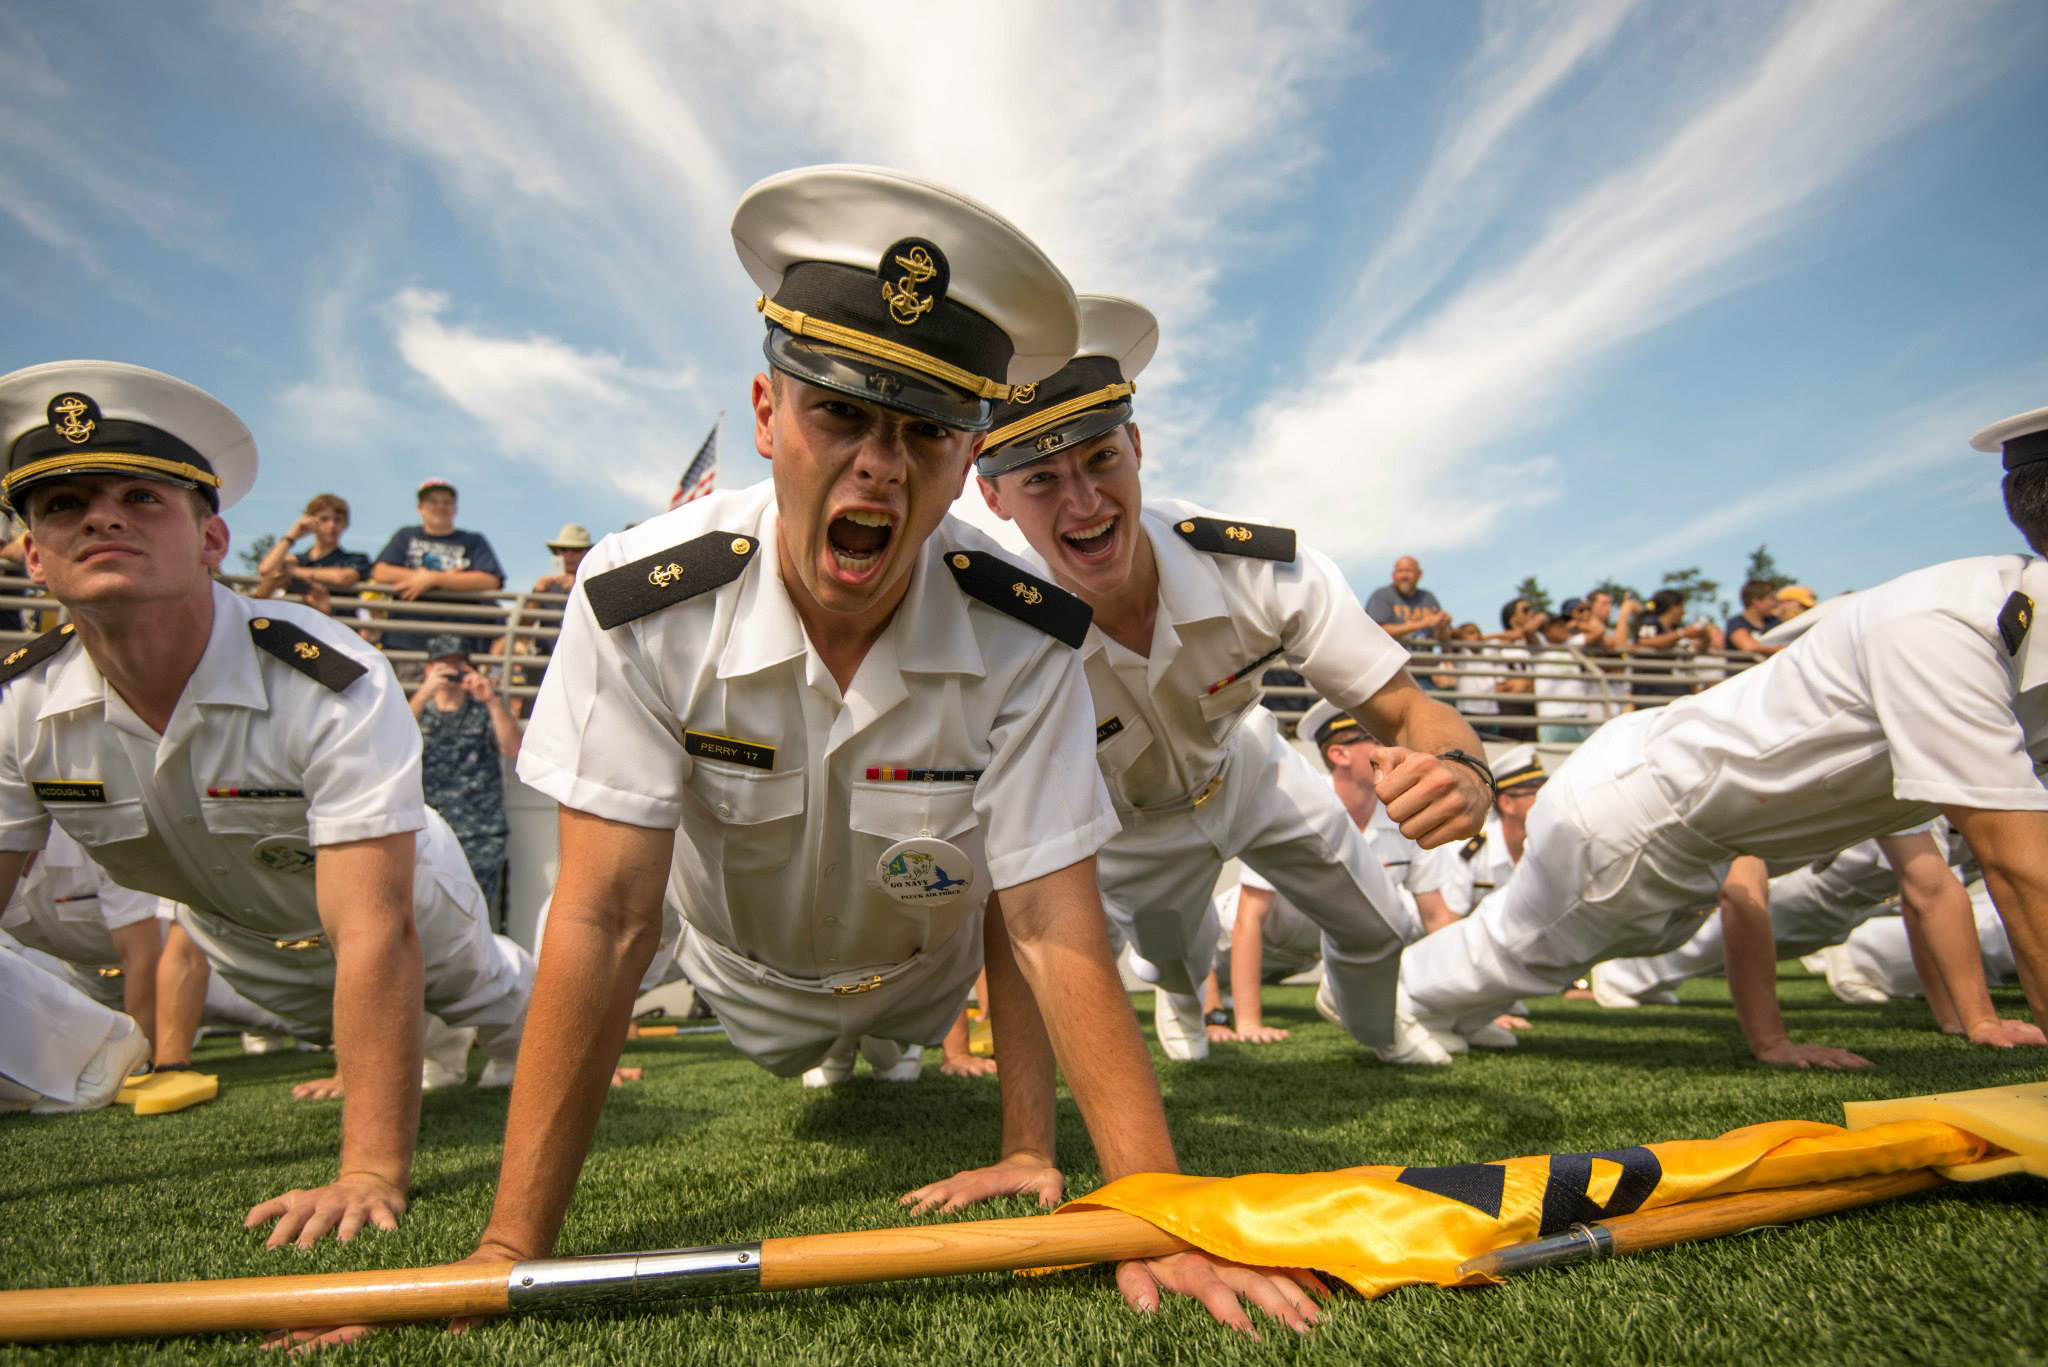 military colleges in us Military friendly rates colleges & schools on their ability to recruit and retain military veterans as students click to see what schools are military friendly .